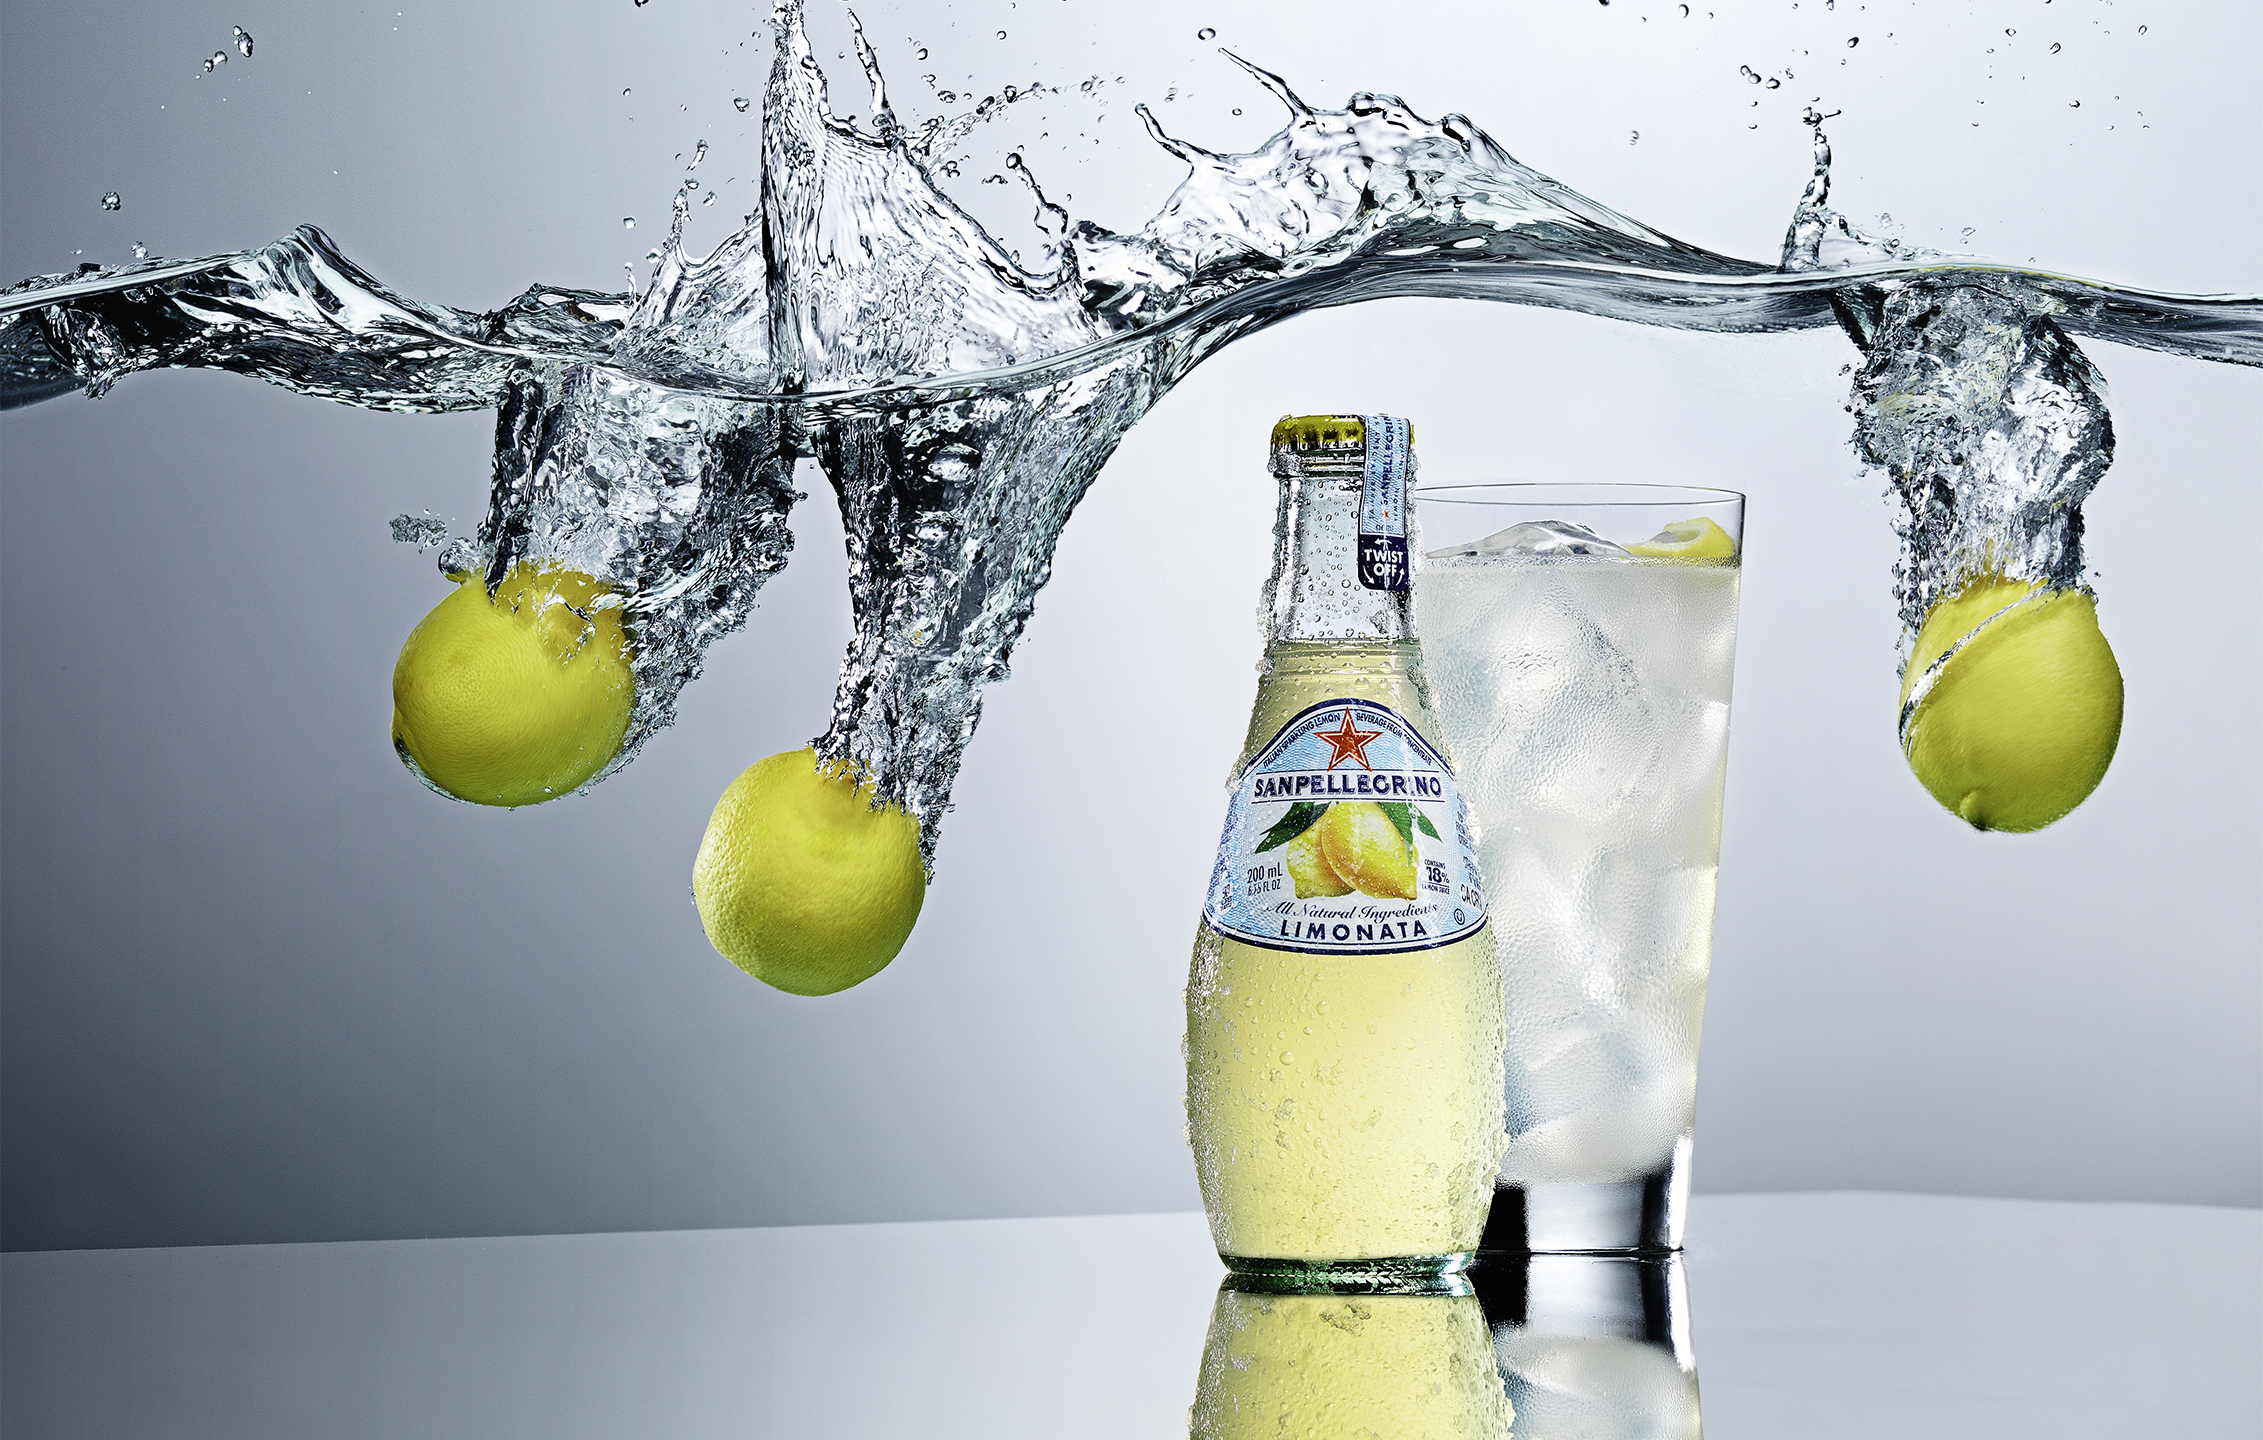 RGG Photo_Phlearn PRO Limonata.jpg